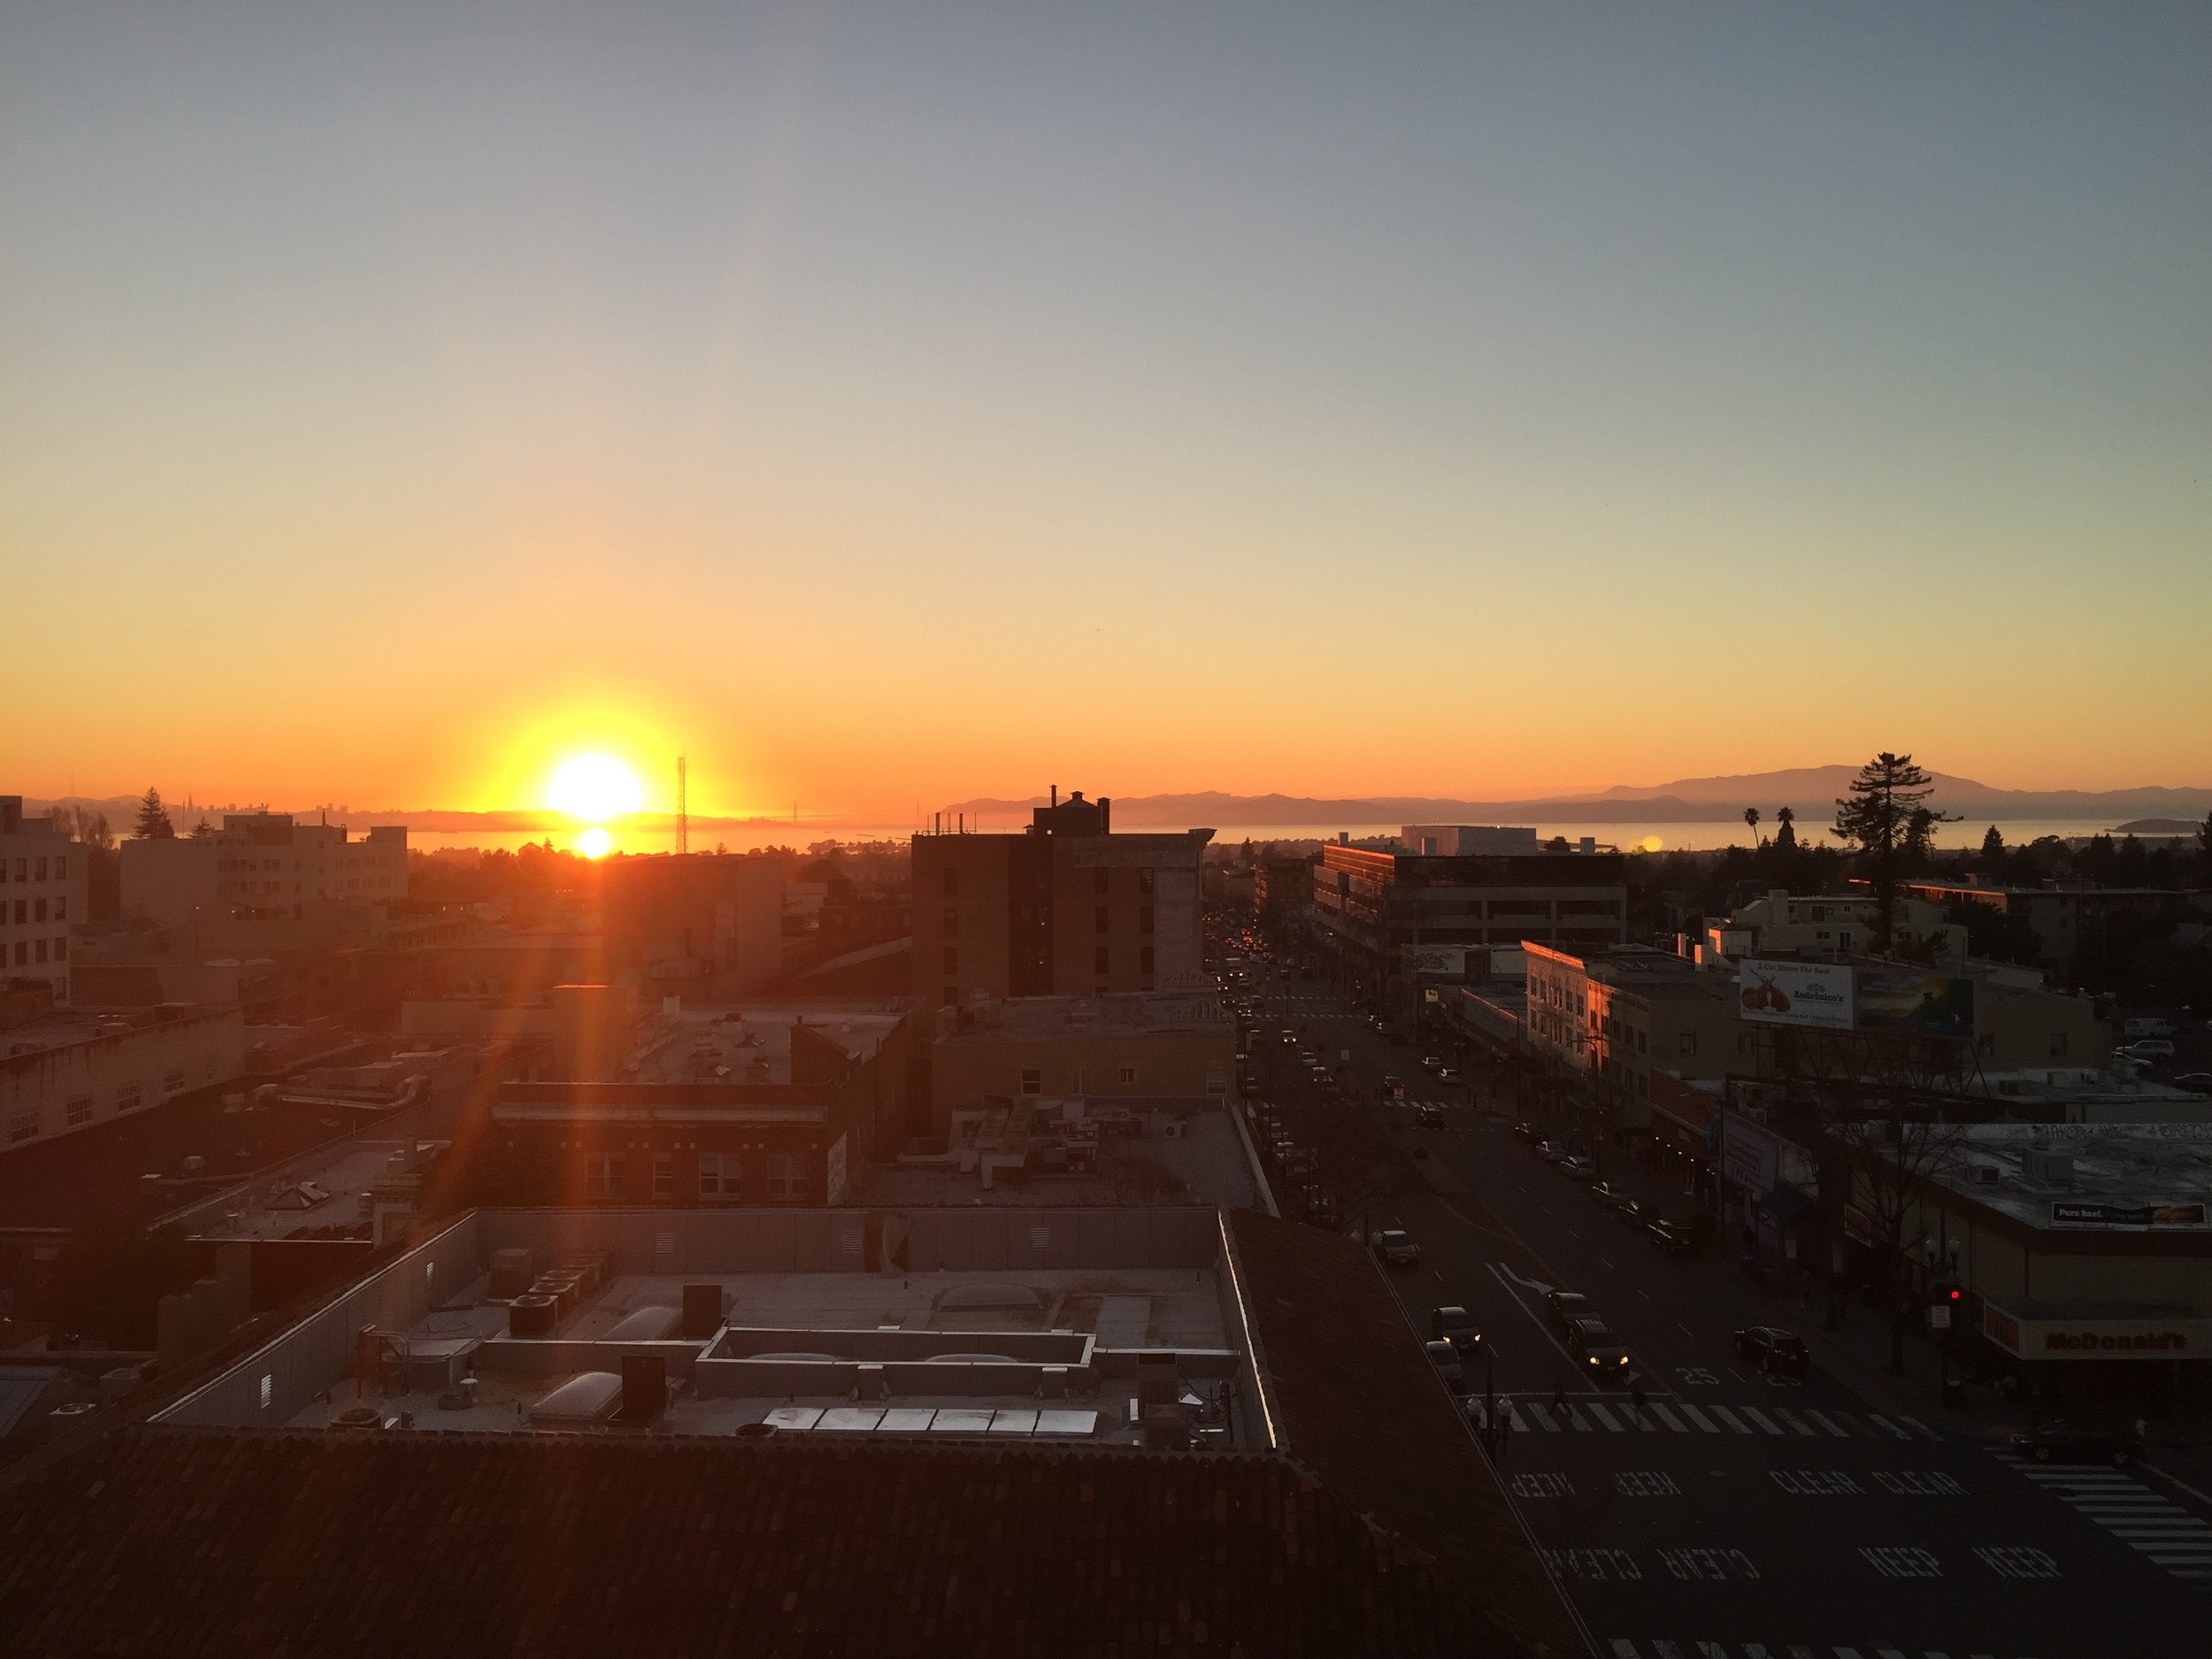 Sure it's a cheesy metaphor - but it  is the actual  sunset on my last work day in San Francisco